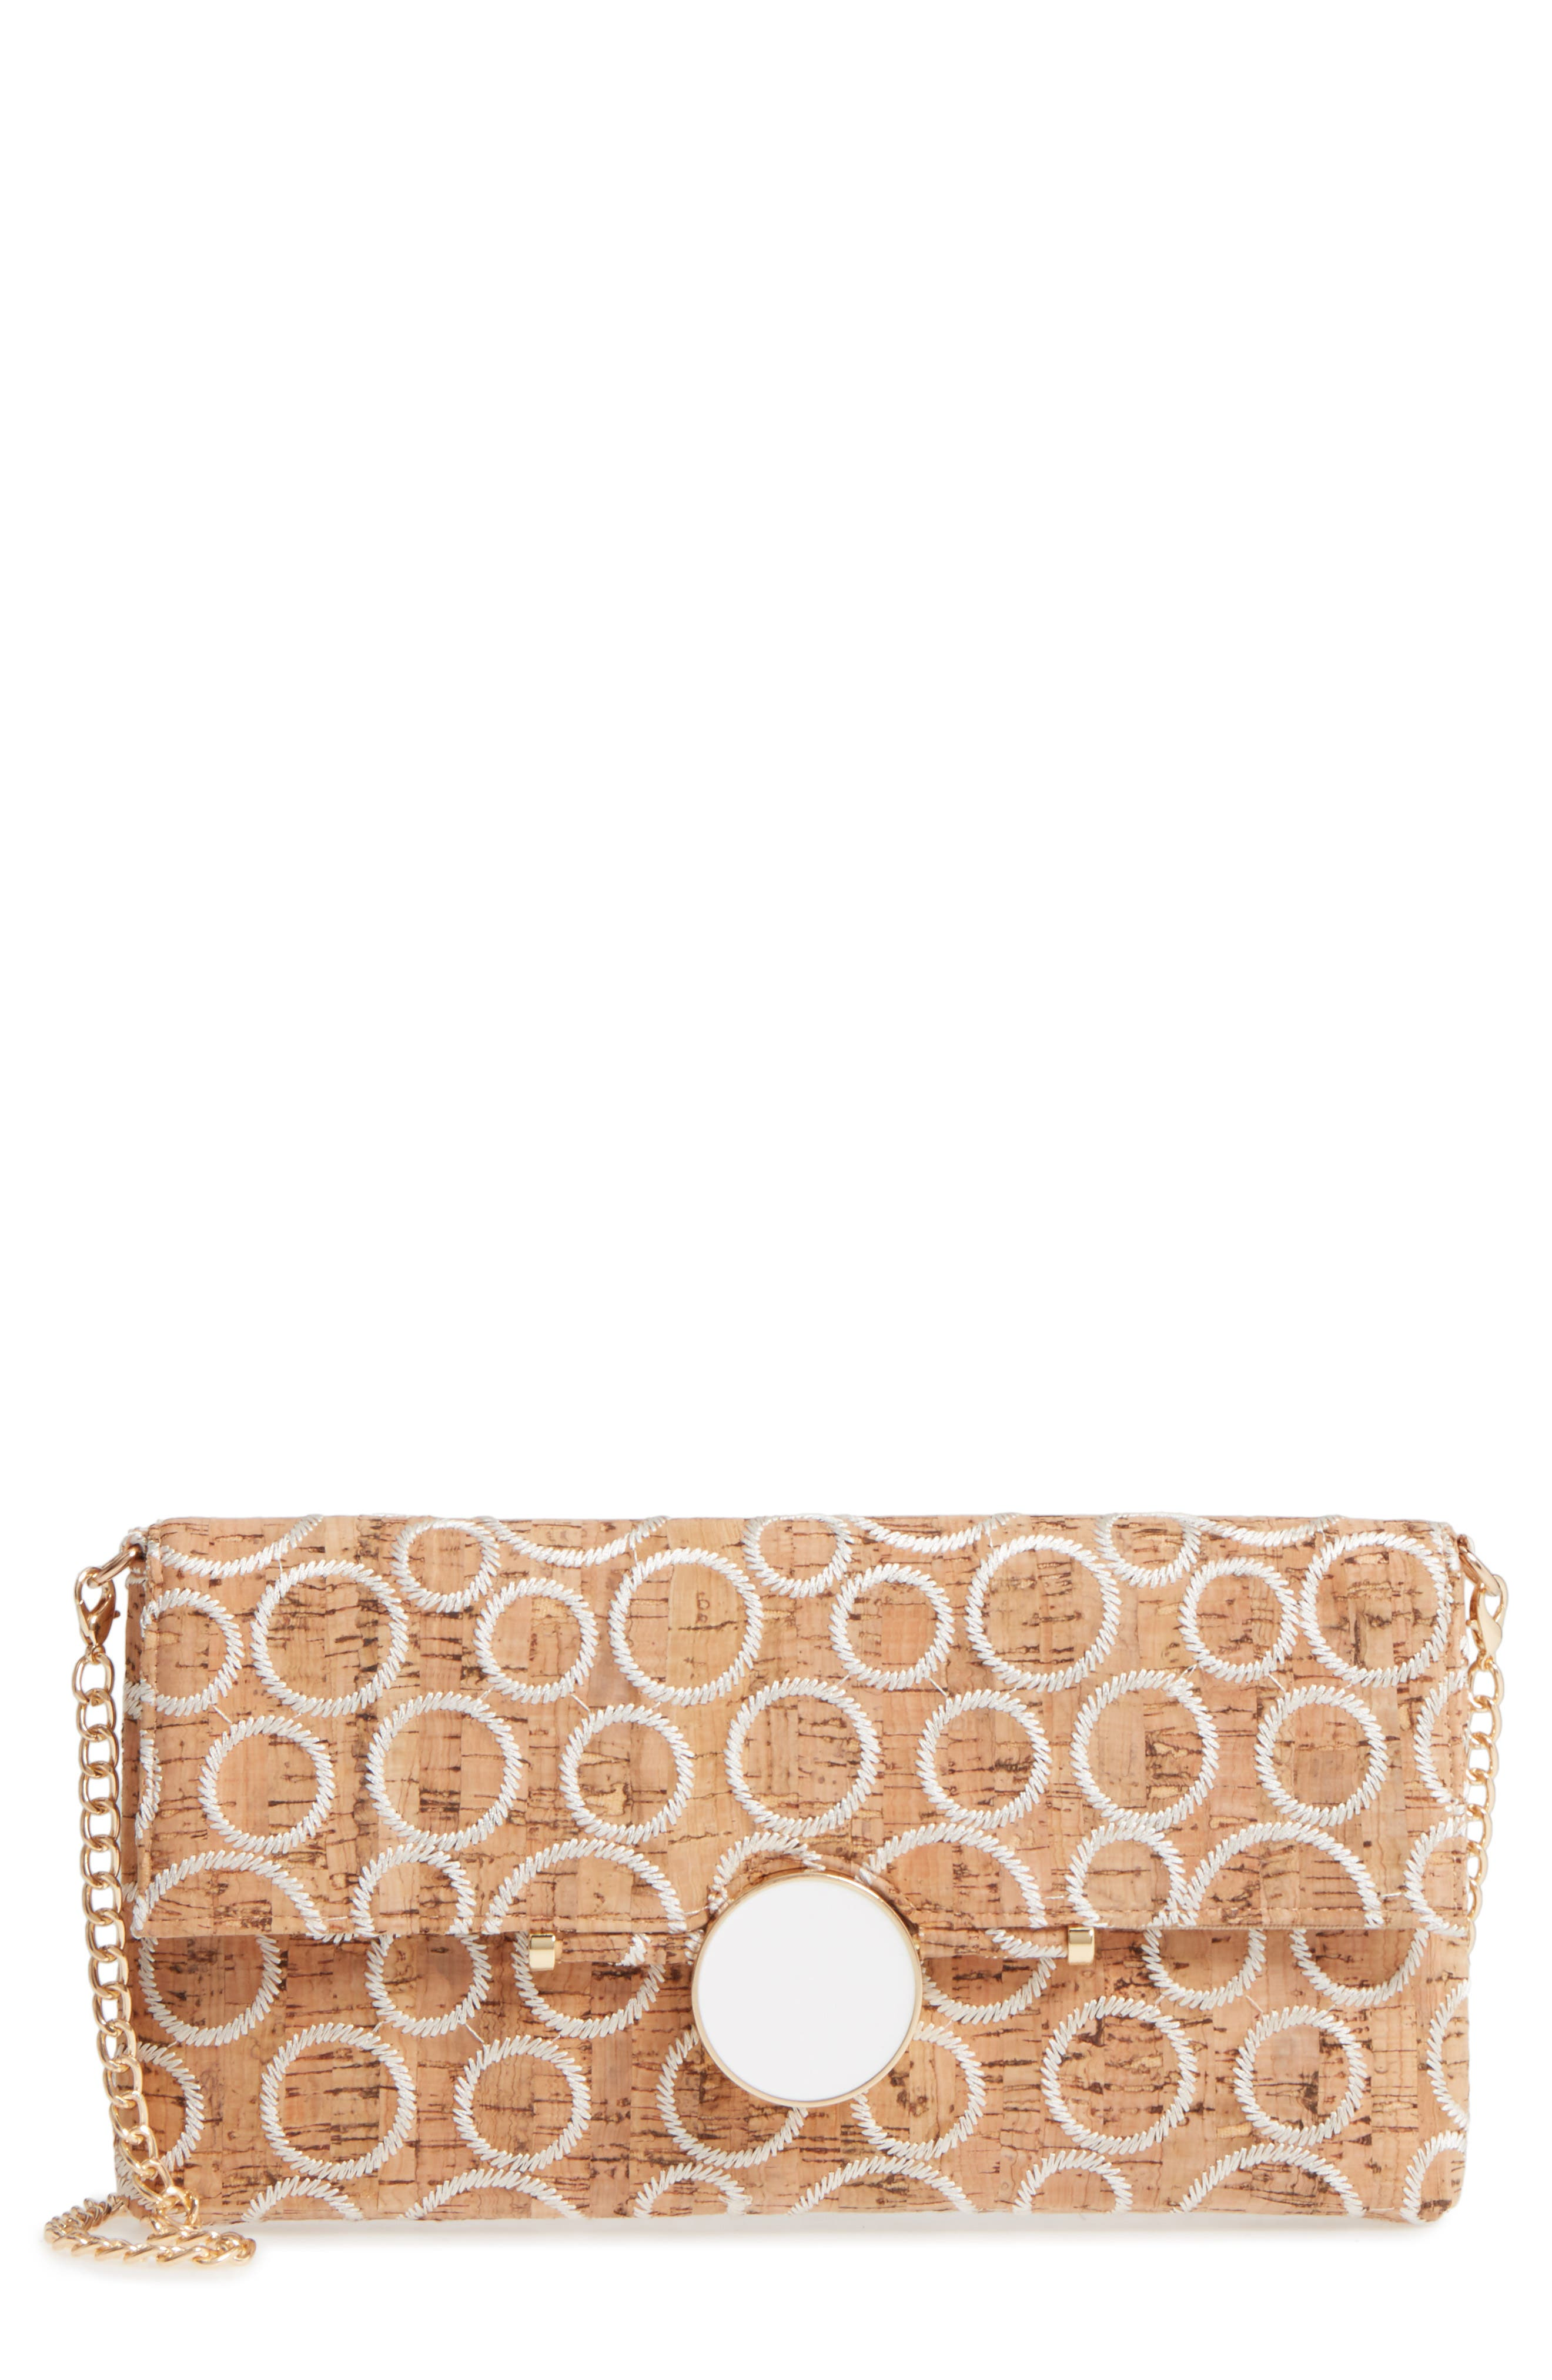 Embroidered Clutch,                             Main thumbnail 1, color,                             Natural/ White